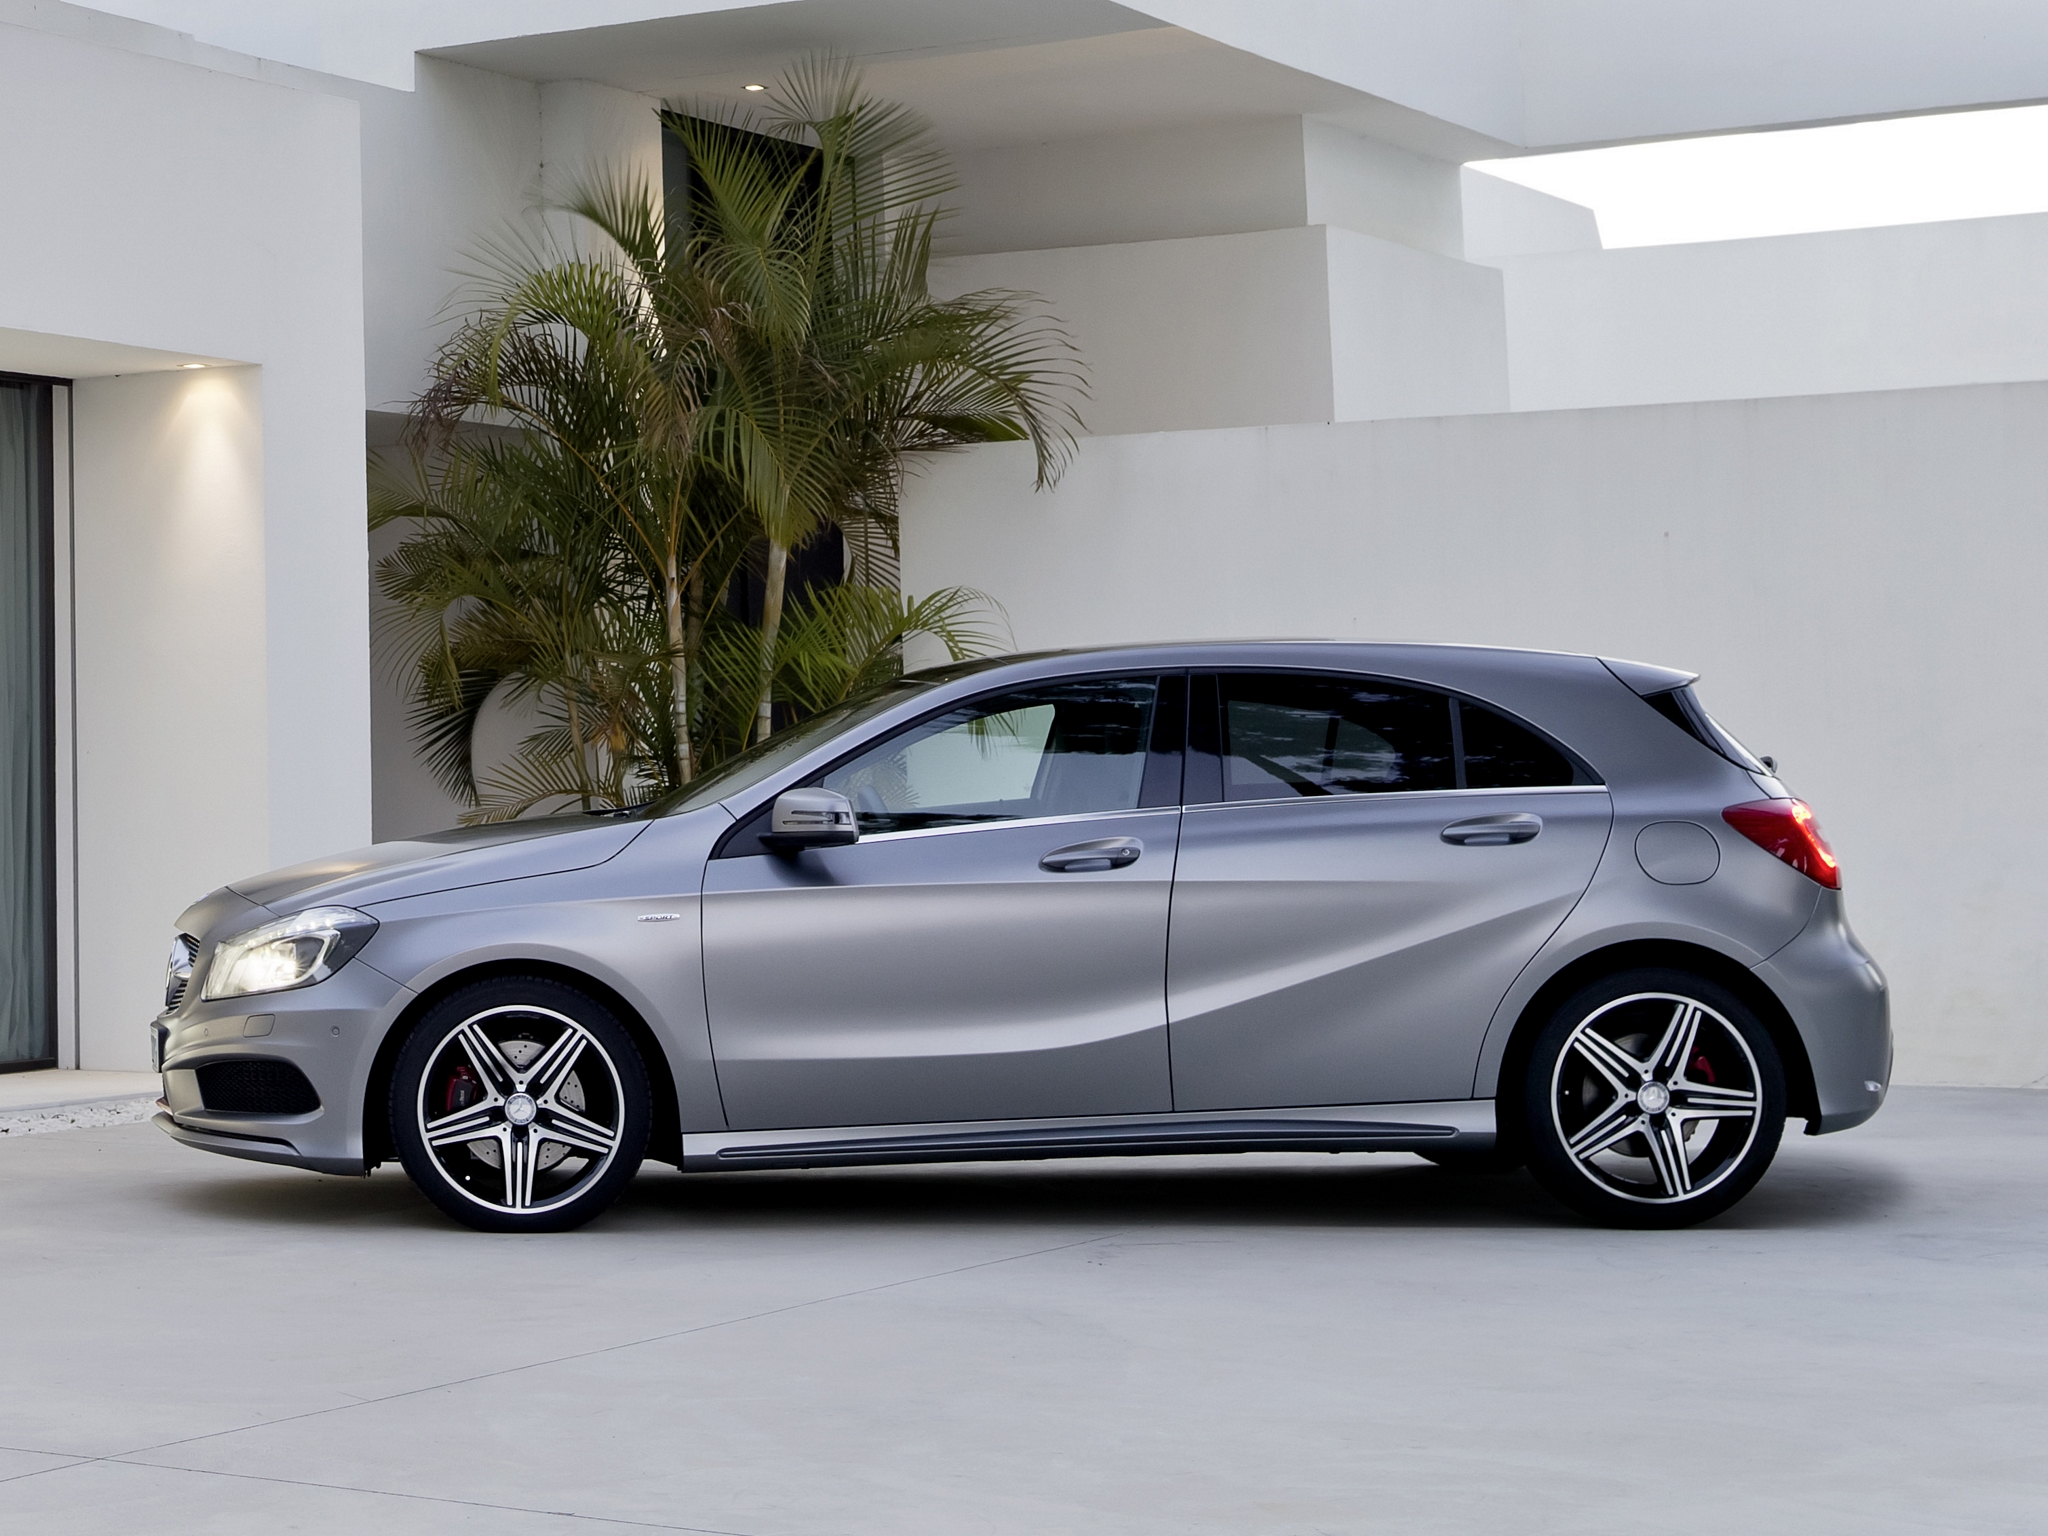 mercedes benz a250 photos photogallery with 6 pics. Cars Review. Best American Auto & Cars Review